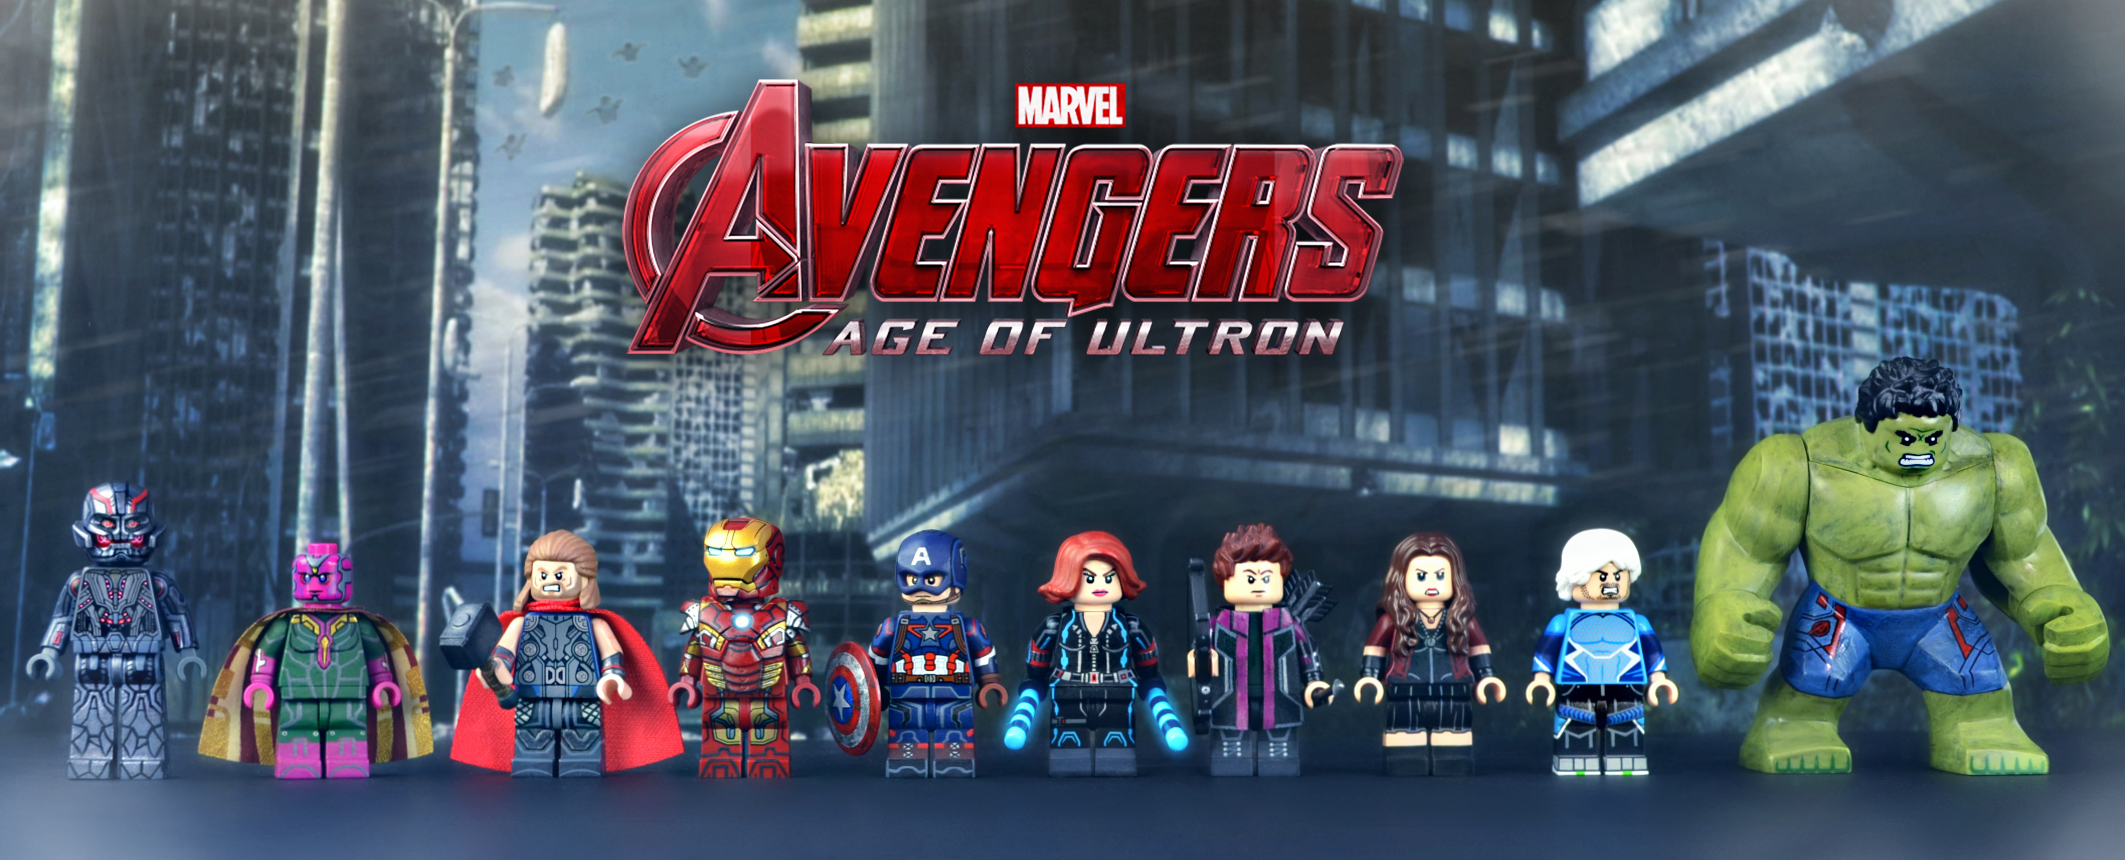 Quicksilver Avengers 2 Concept Art LEGO Avengers: Age of ...